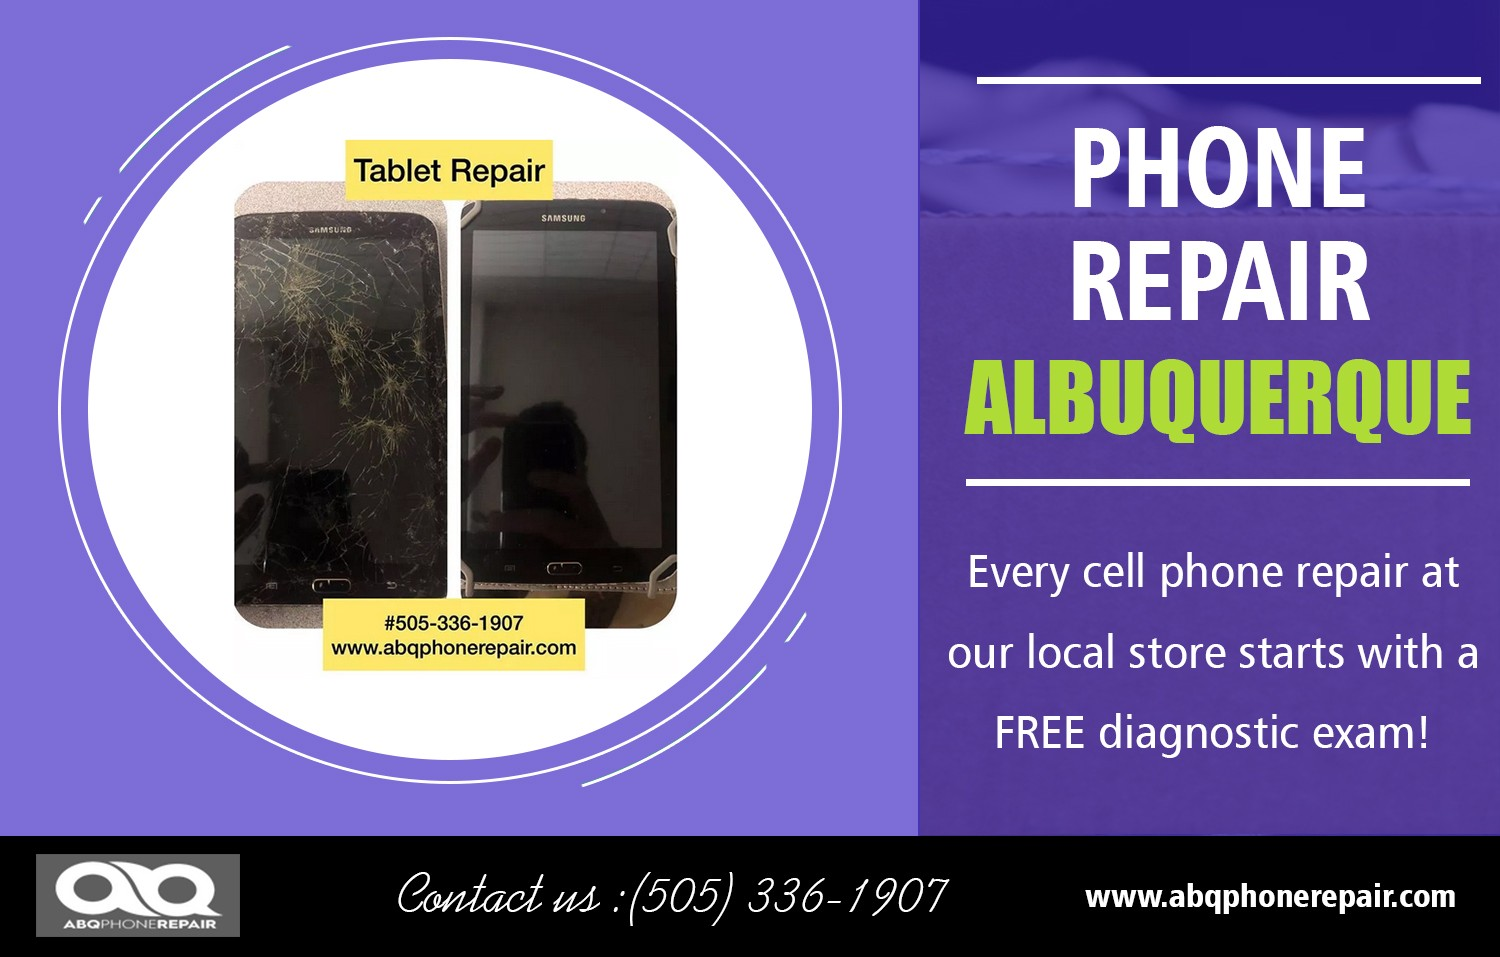 Cell Phone Repair Albuquerque >> Phone Repair Albuquerque Call 505 336 1907 Abqphonerepair Com